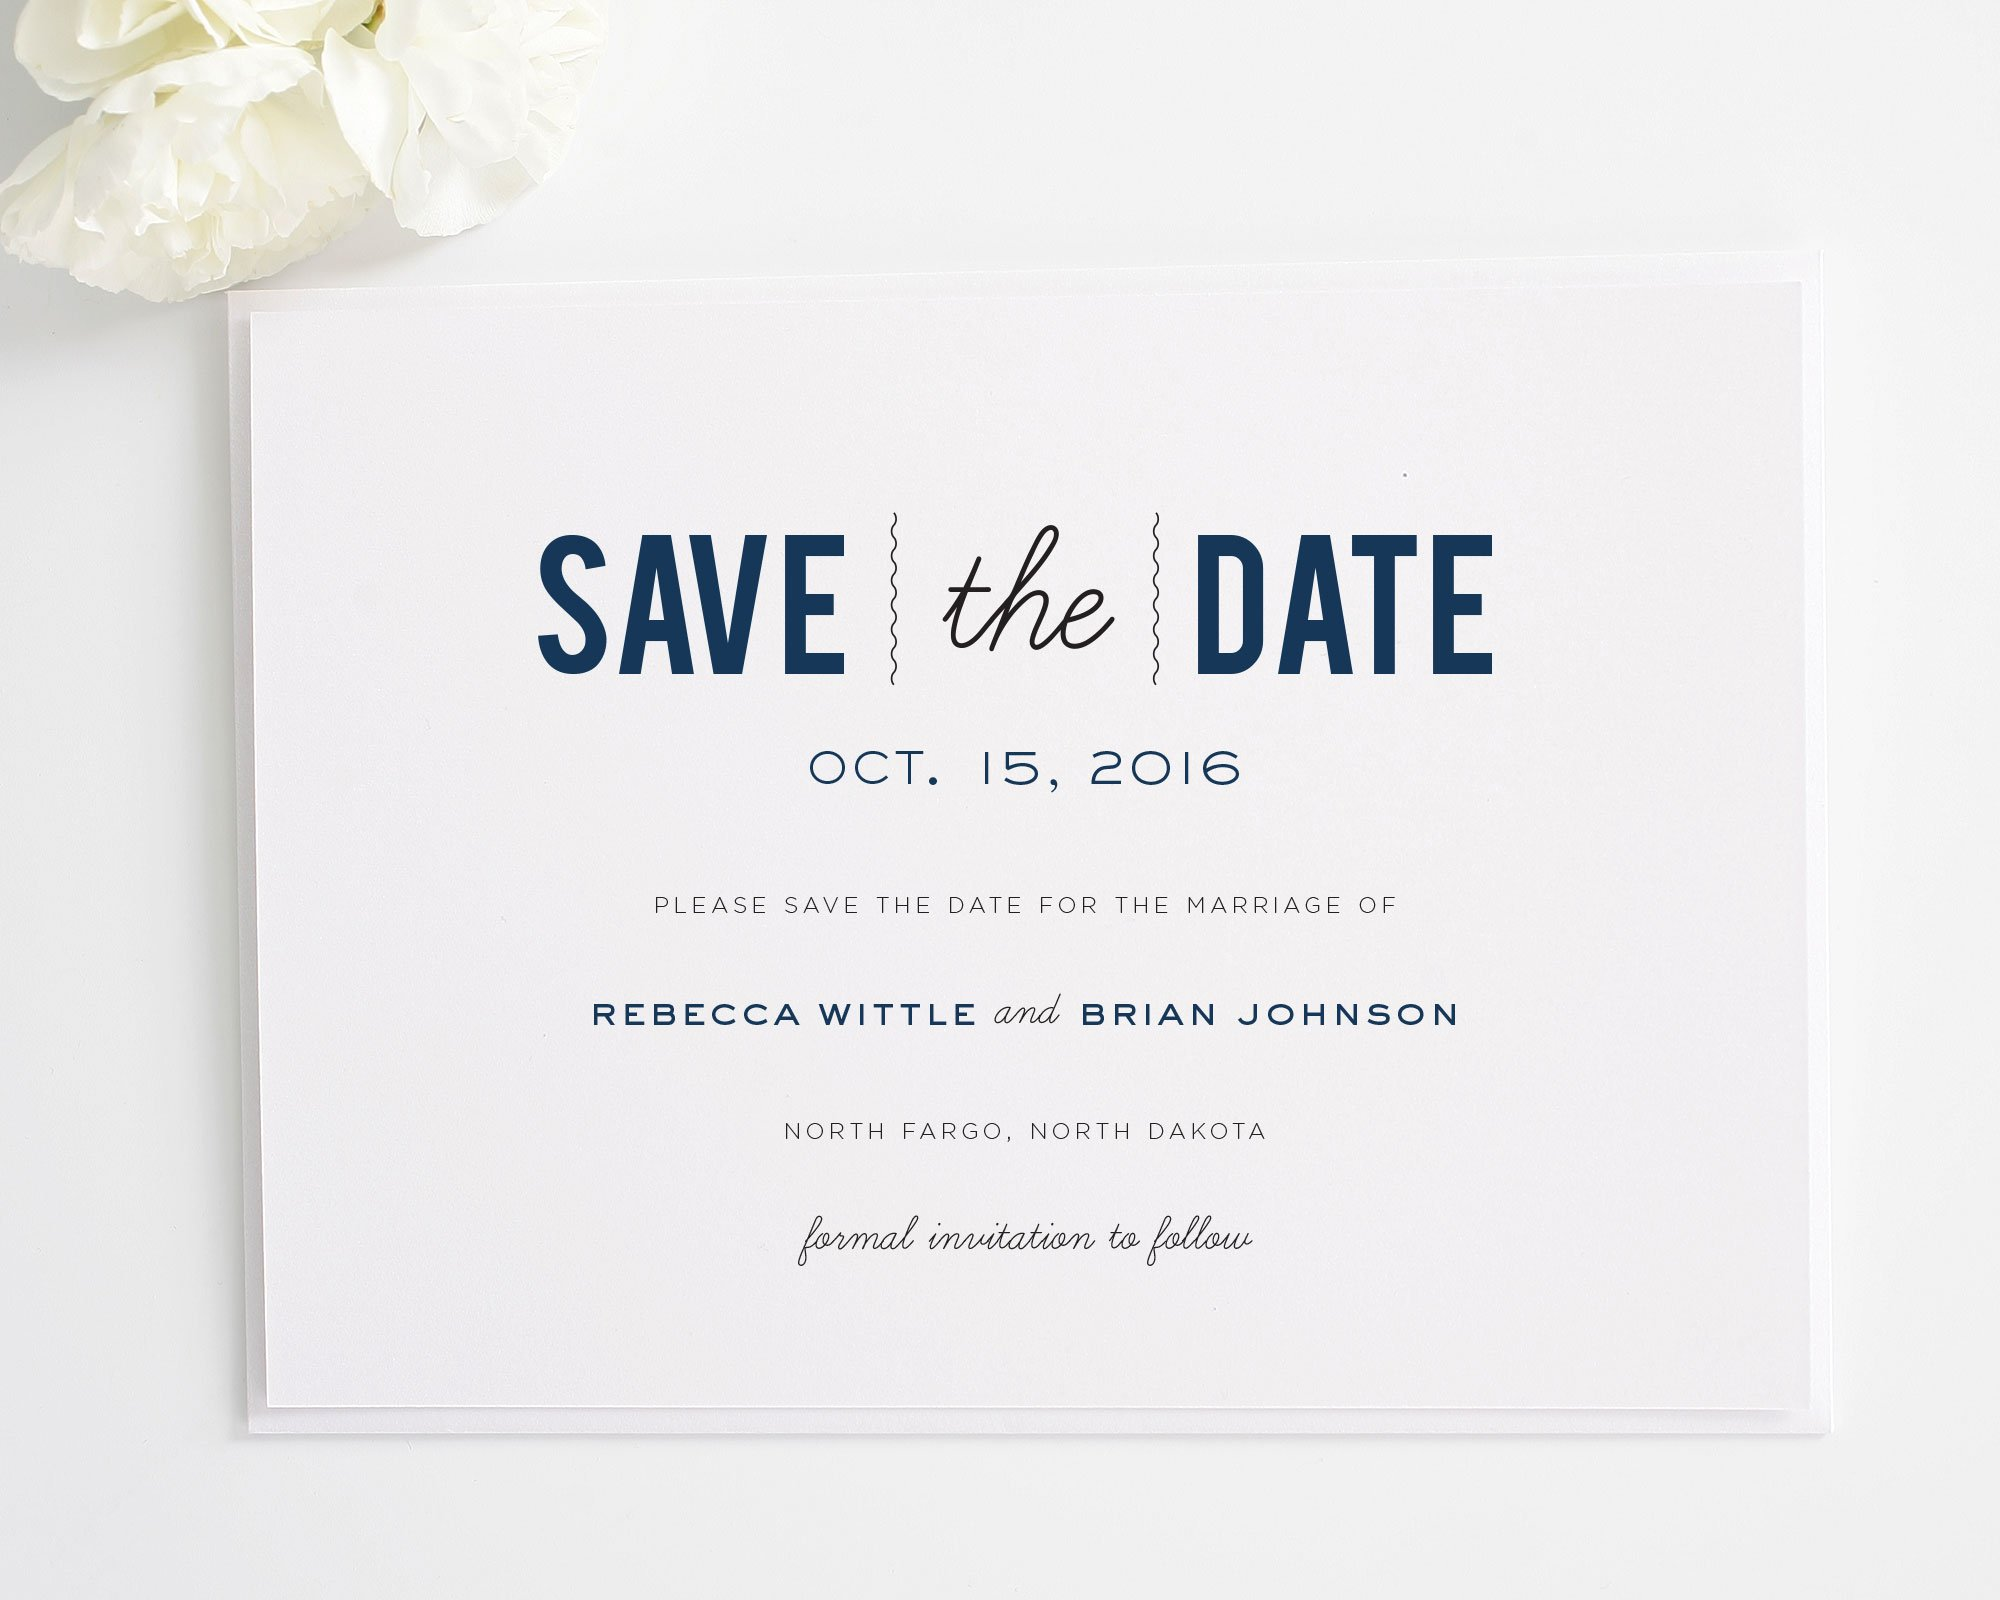 date monogram save the date cards save the date cards by With images of save the date wedding invitations